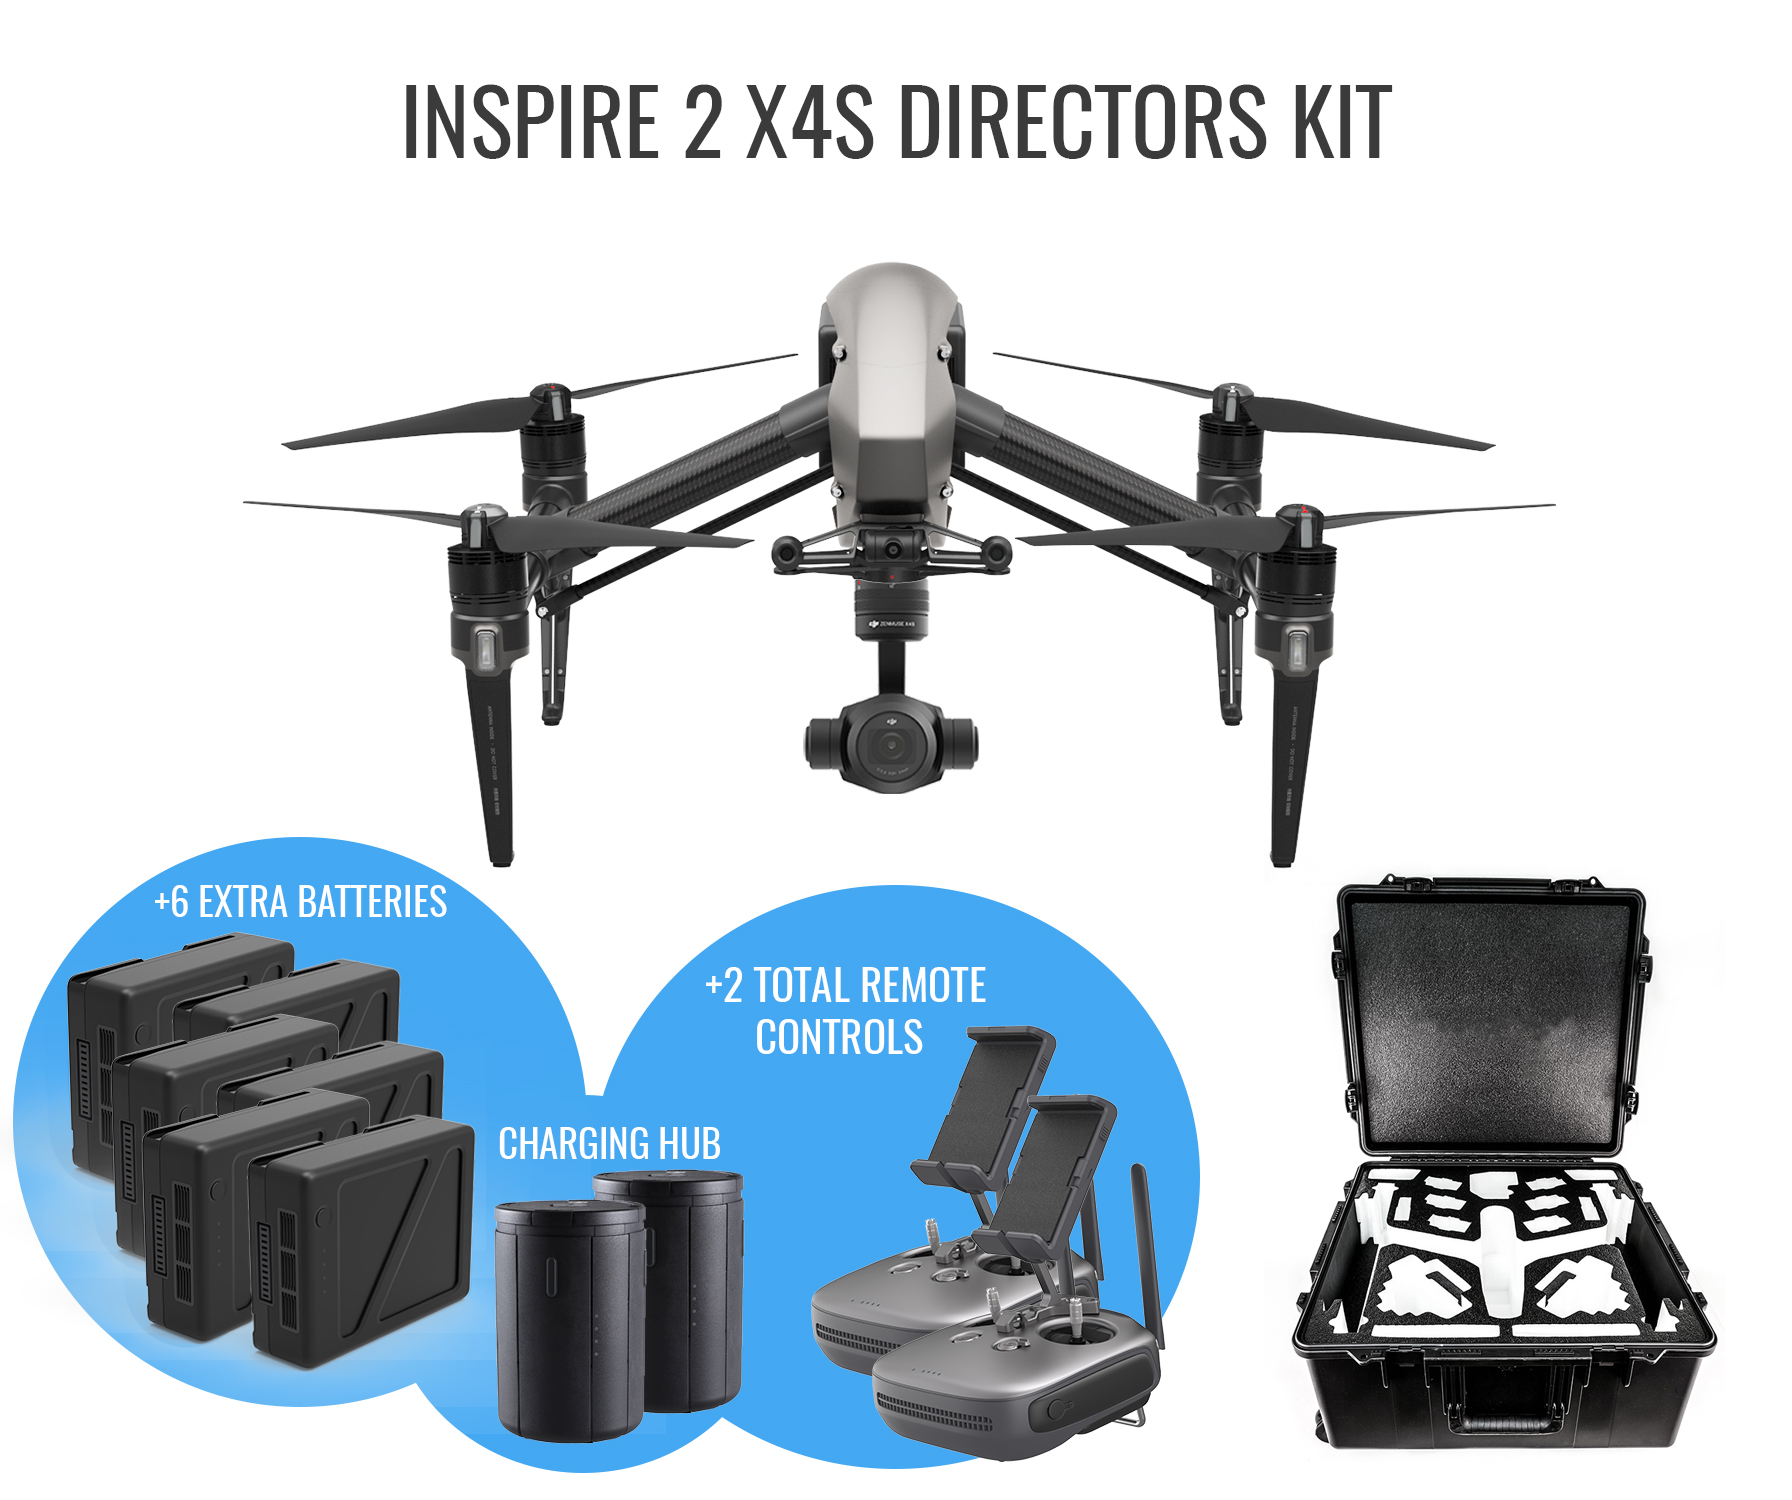 Dji Inspire 2 X4s Directors Kit Unmanned Systems Source Zenmuse